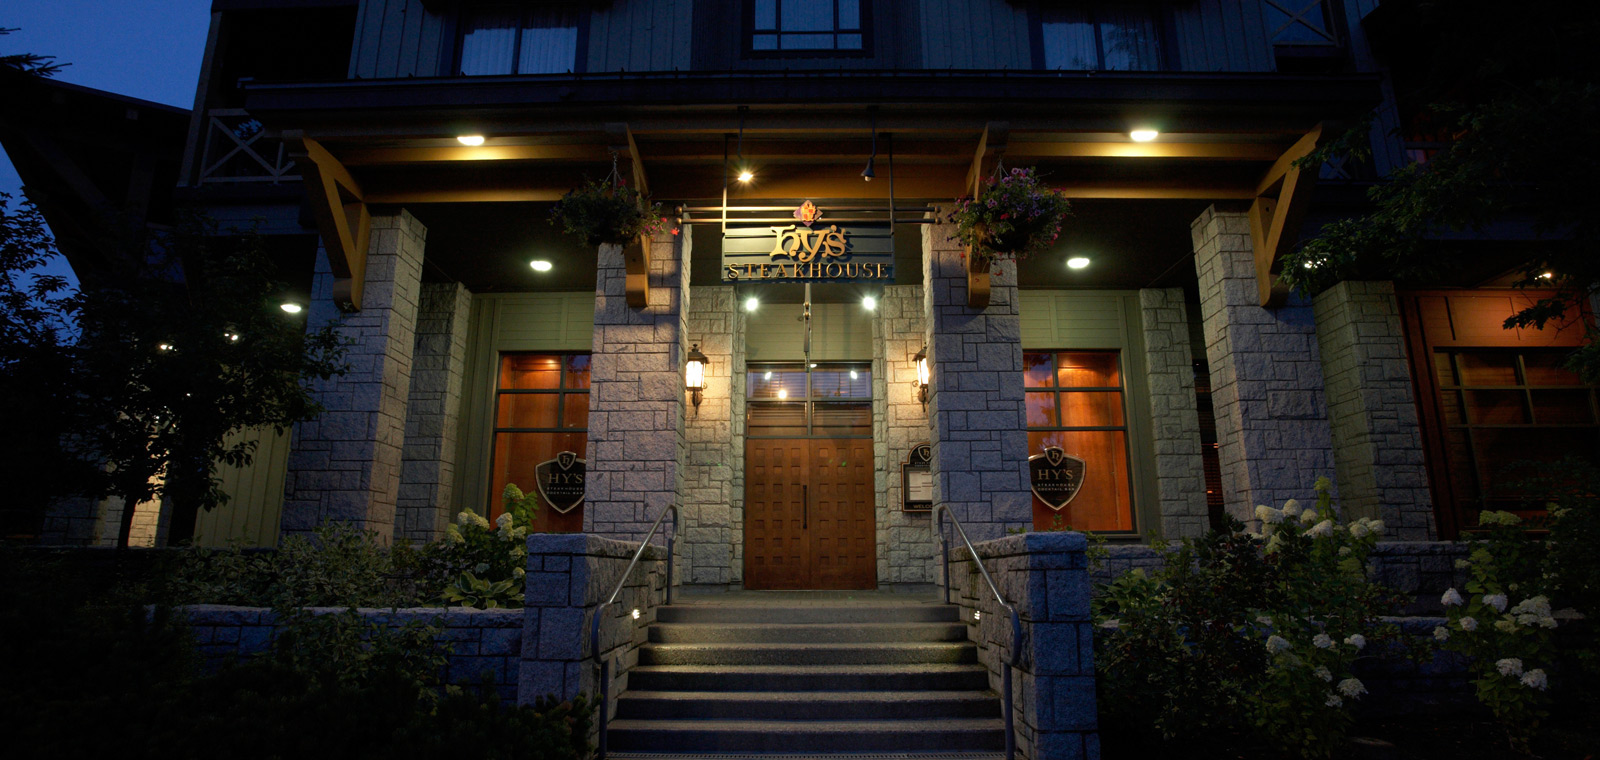 Hy's Steakhouse is celebrating 20 great years in Whistler with special Anniversary Menu